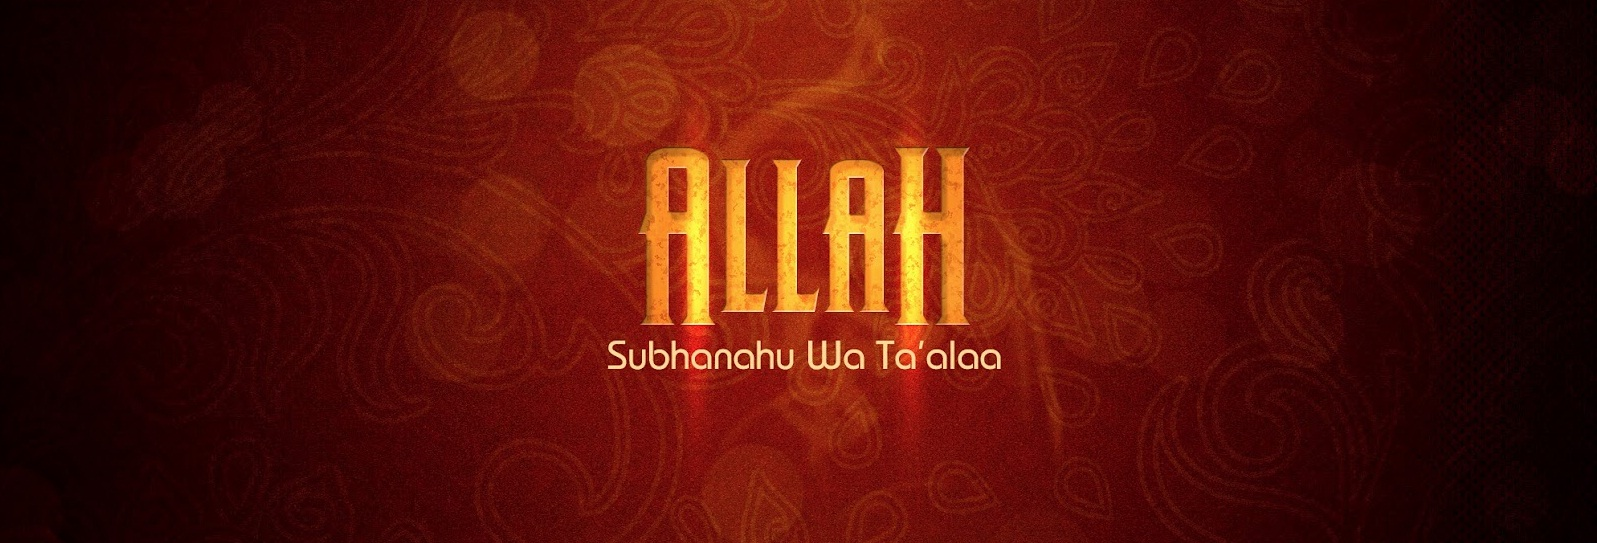 Islamic Pictures Facebook Cover Photo 1 Allah Swt